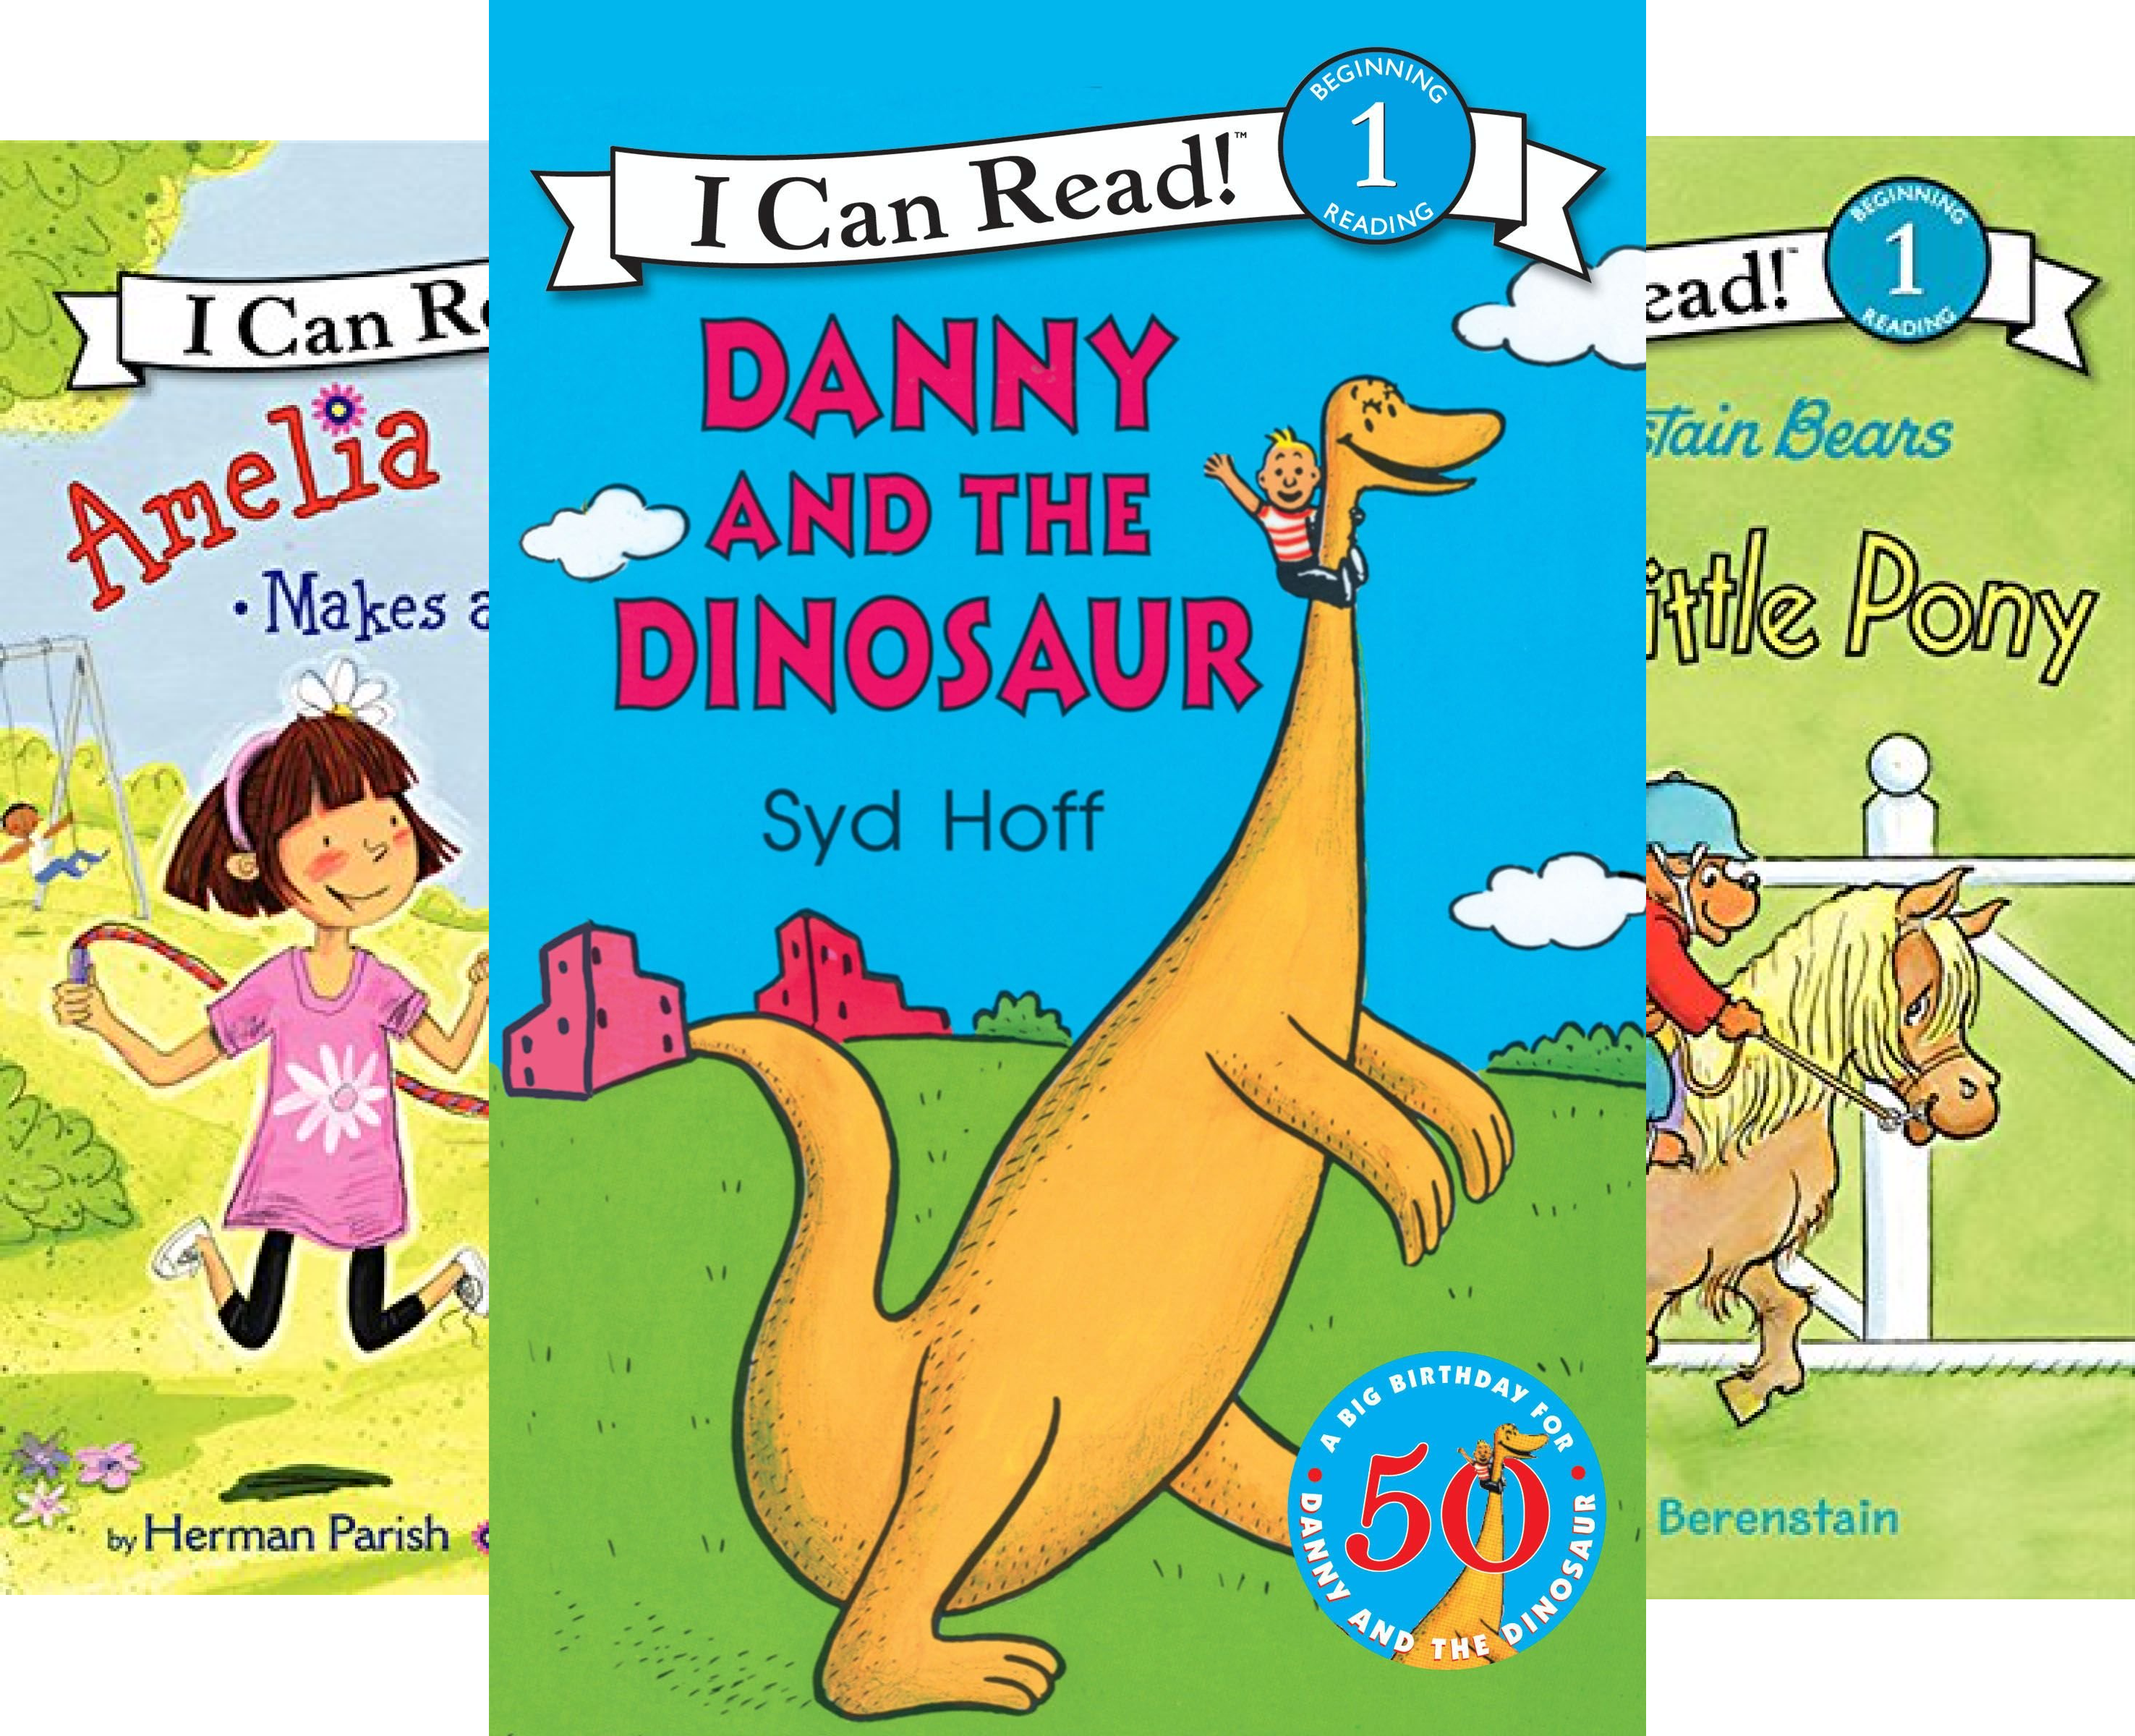 Danny and the Dinosaur and Friends: Level One Box Set (I Can Read Book 1) (8 Book Series)